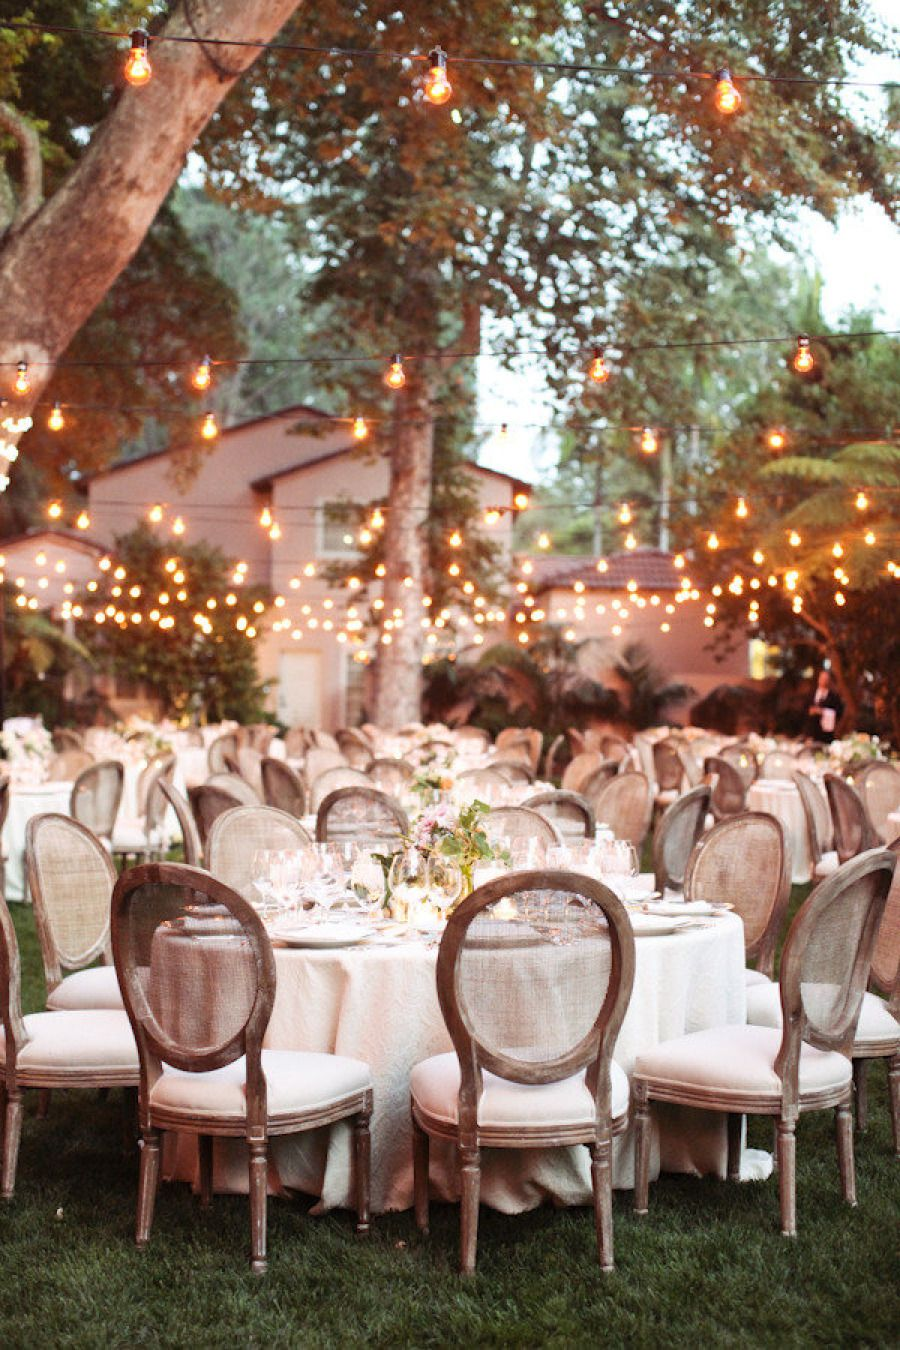 Awesome Backyard Wedding Reception With String Lights These Bulb Provide A Feeling